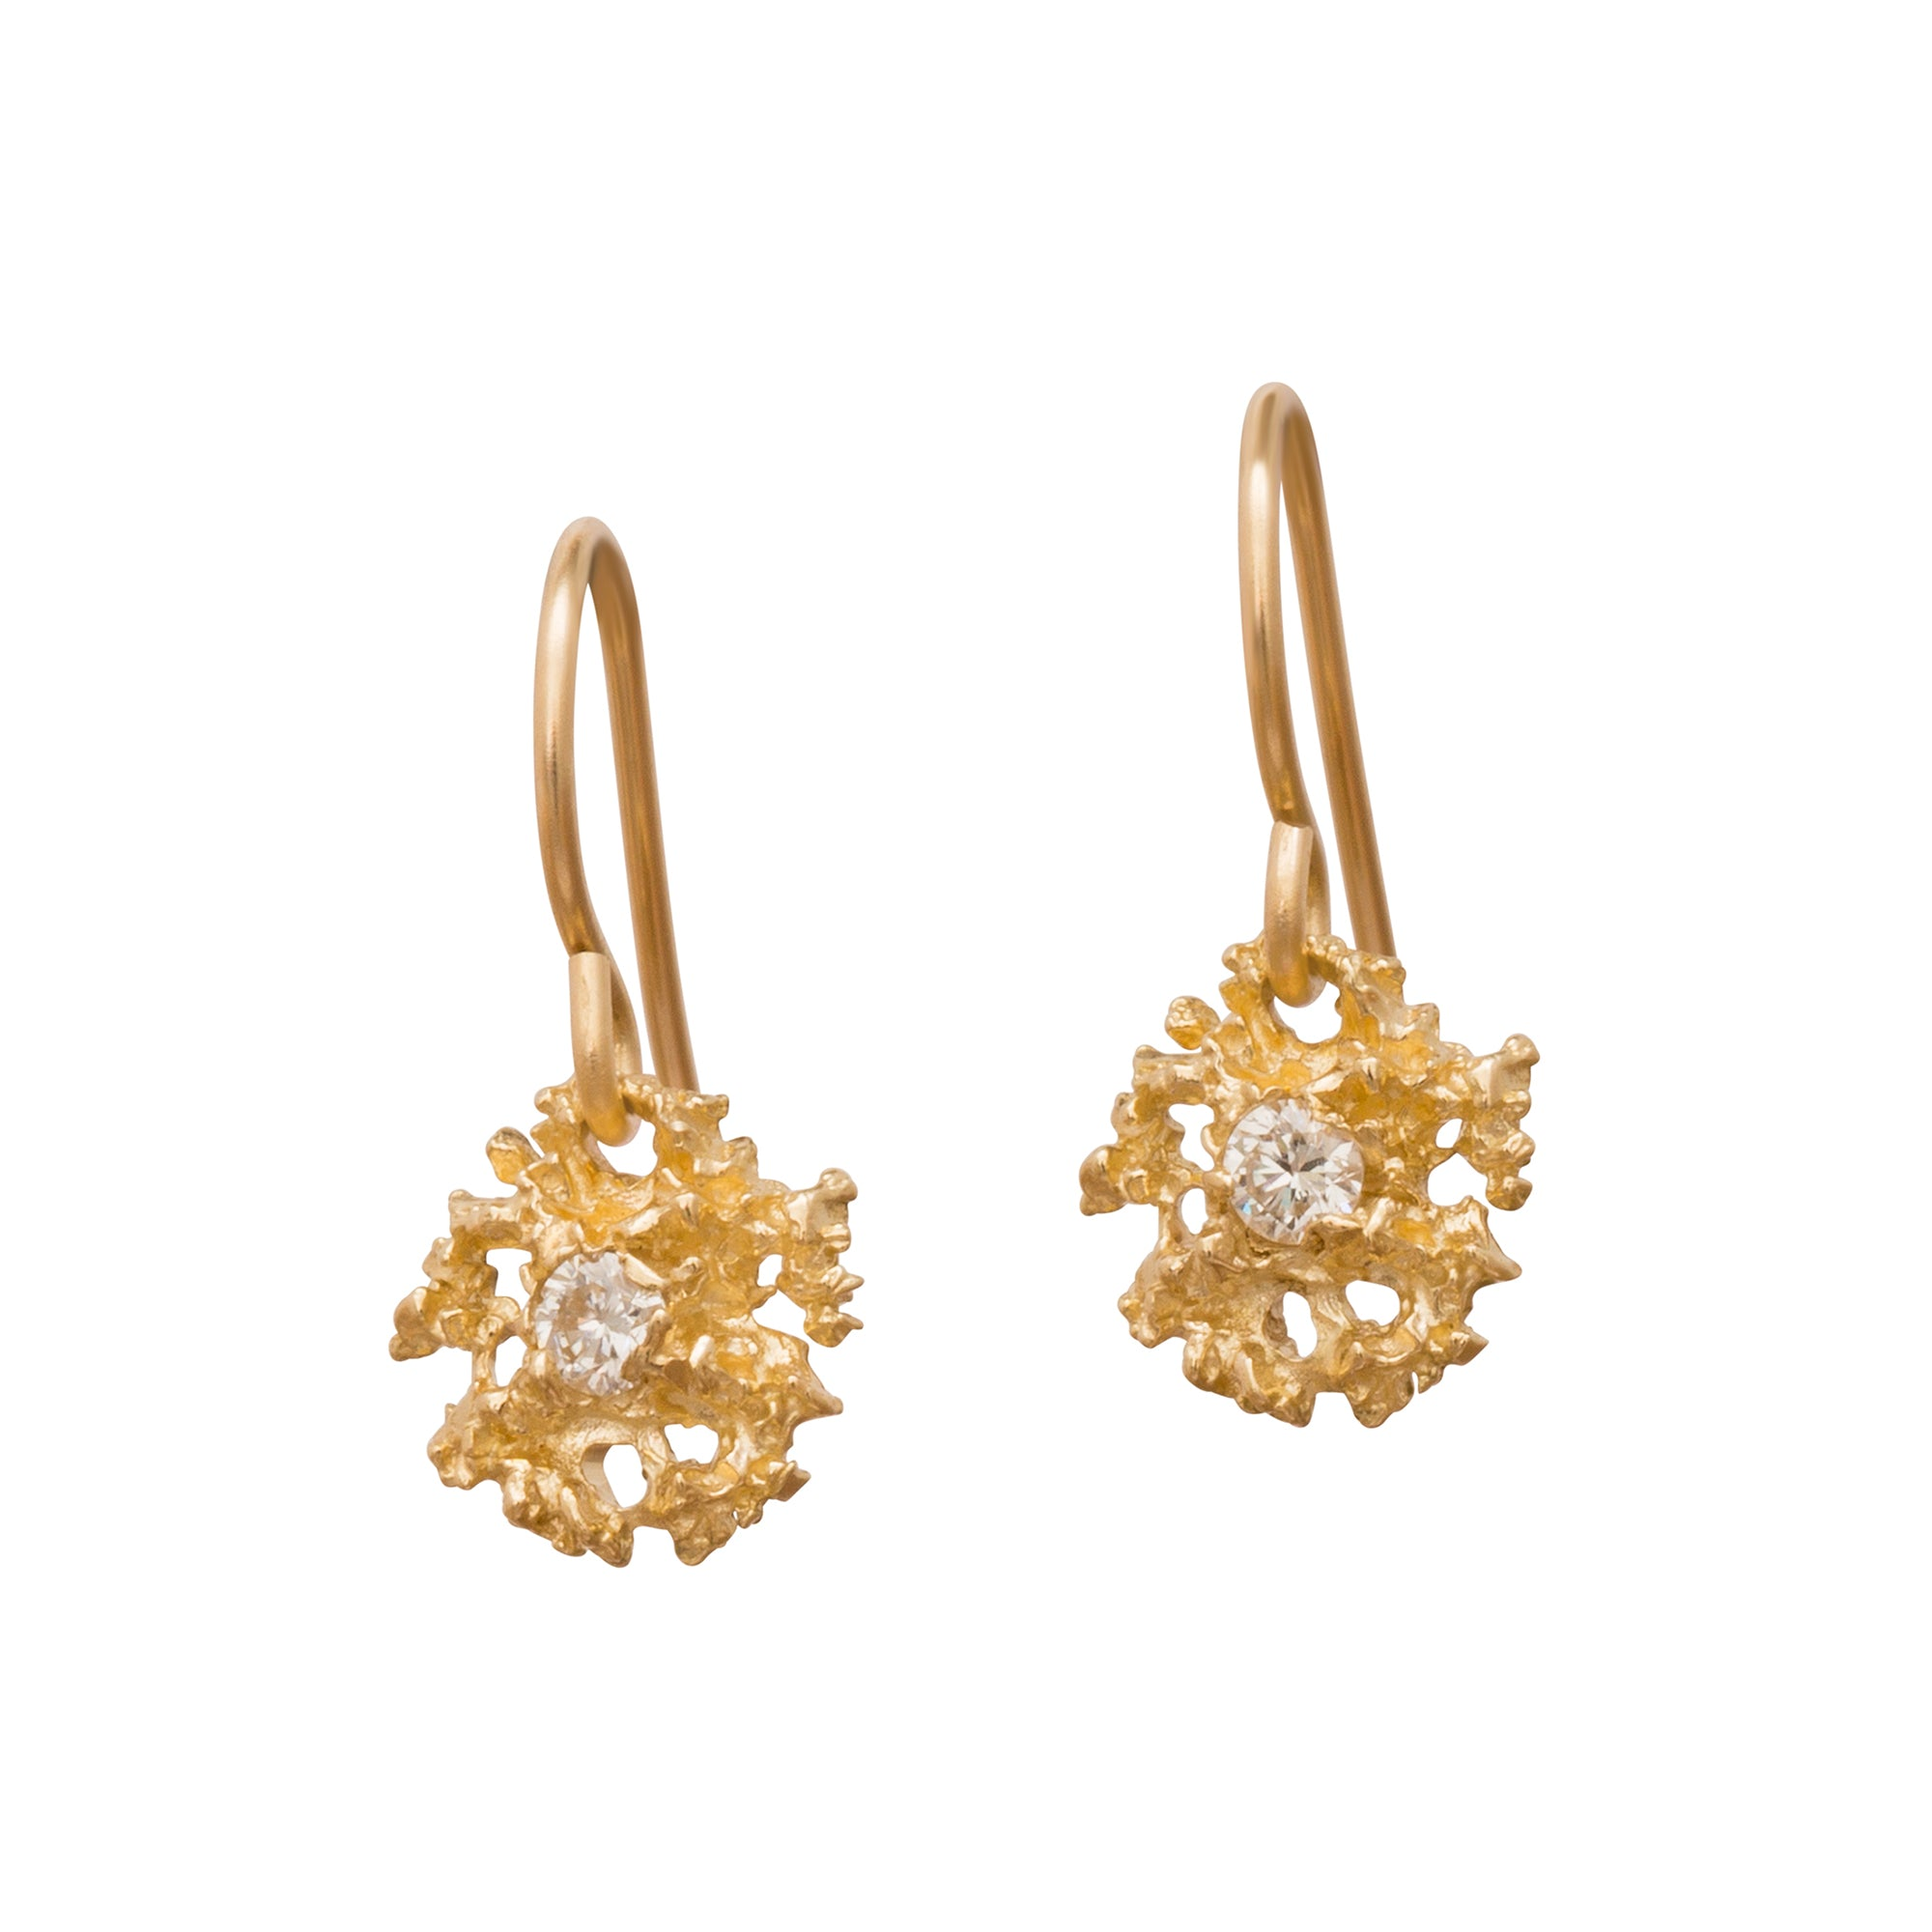 Stellar Lichen Star Earrings by Branch for Broken English Jewelry